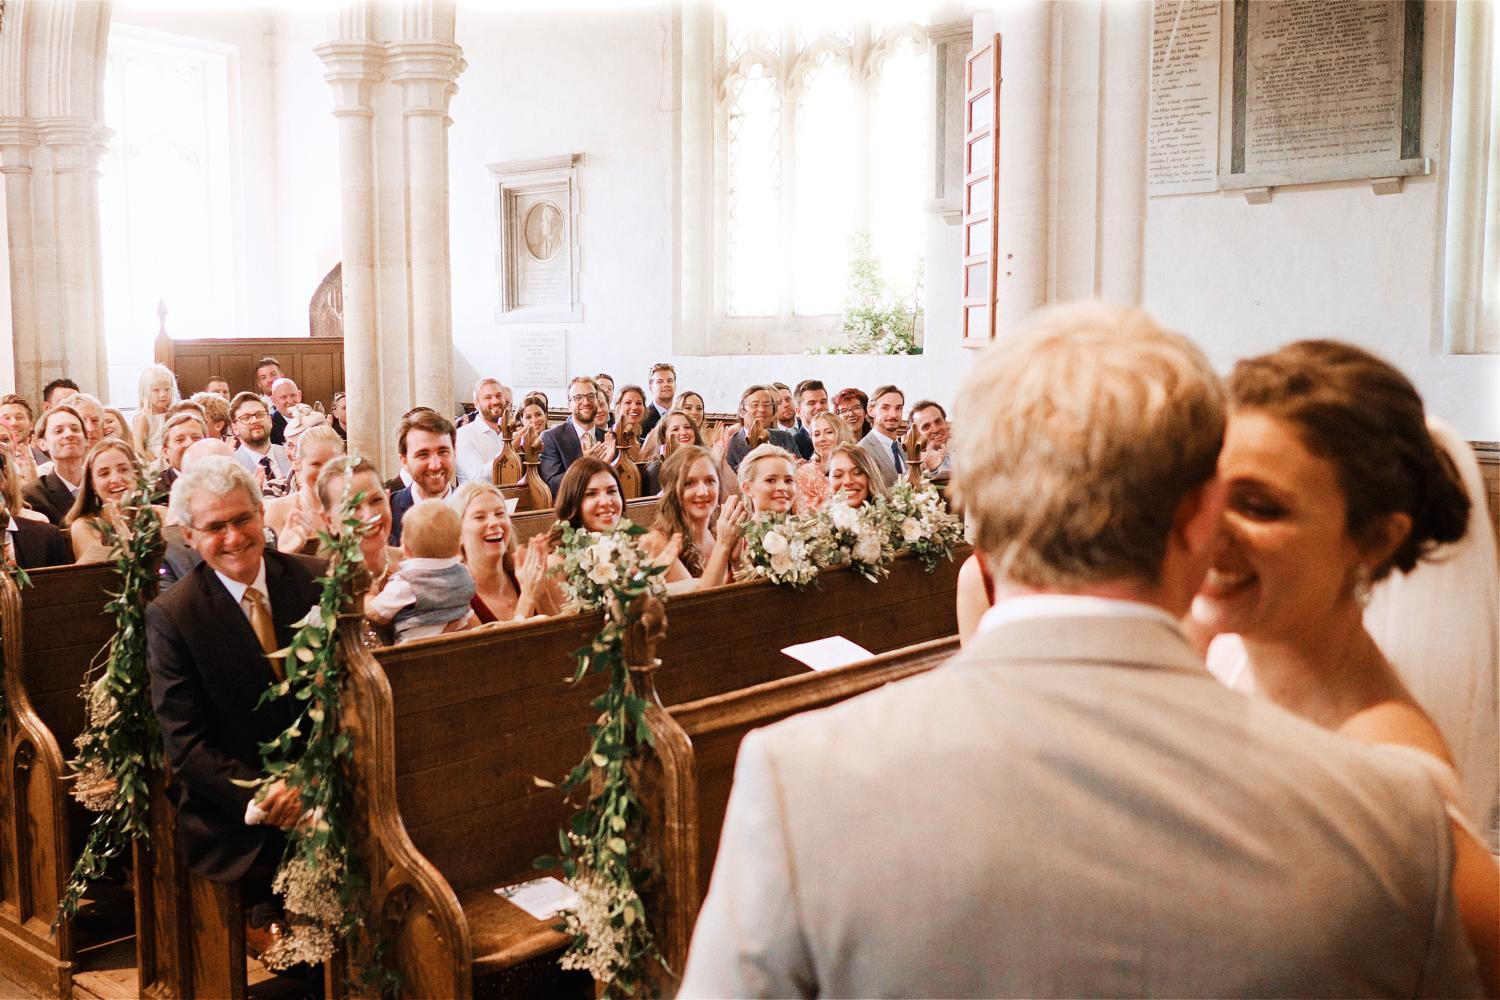 Guests cheer a newly wedded couple in a church